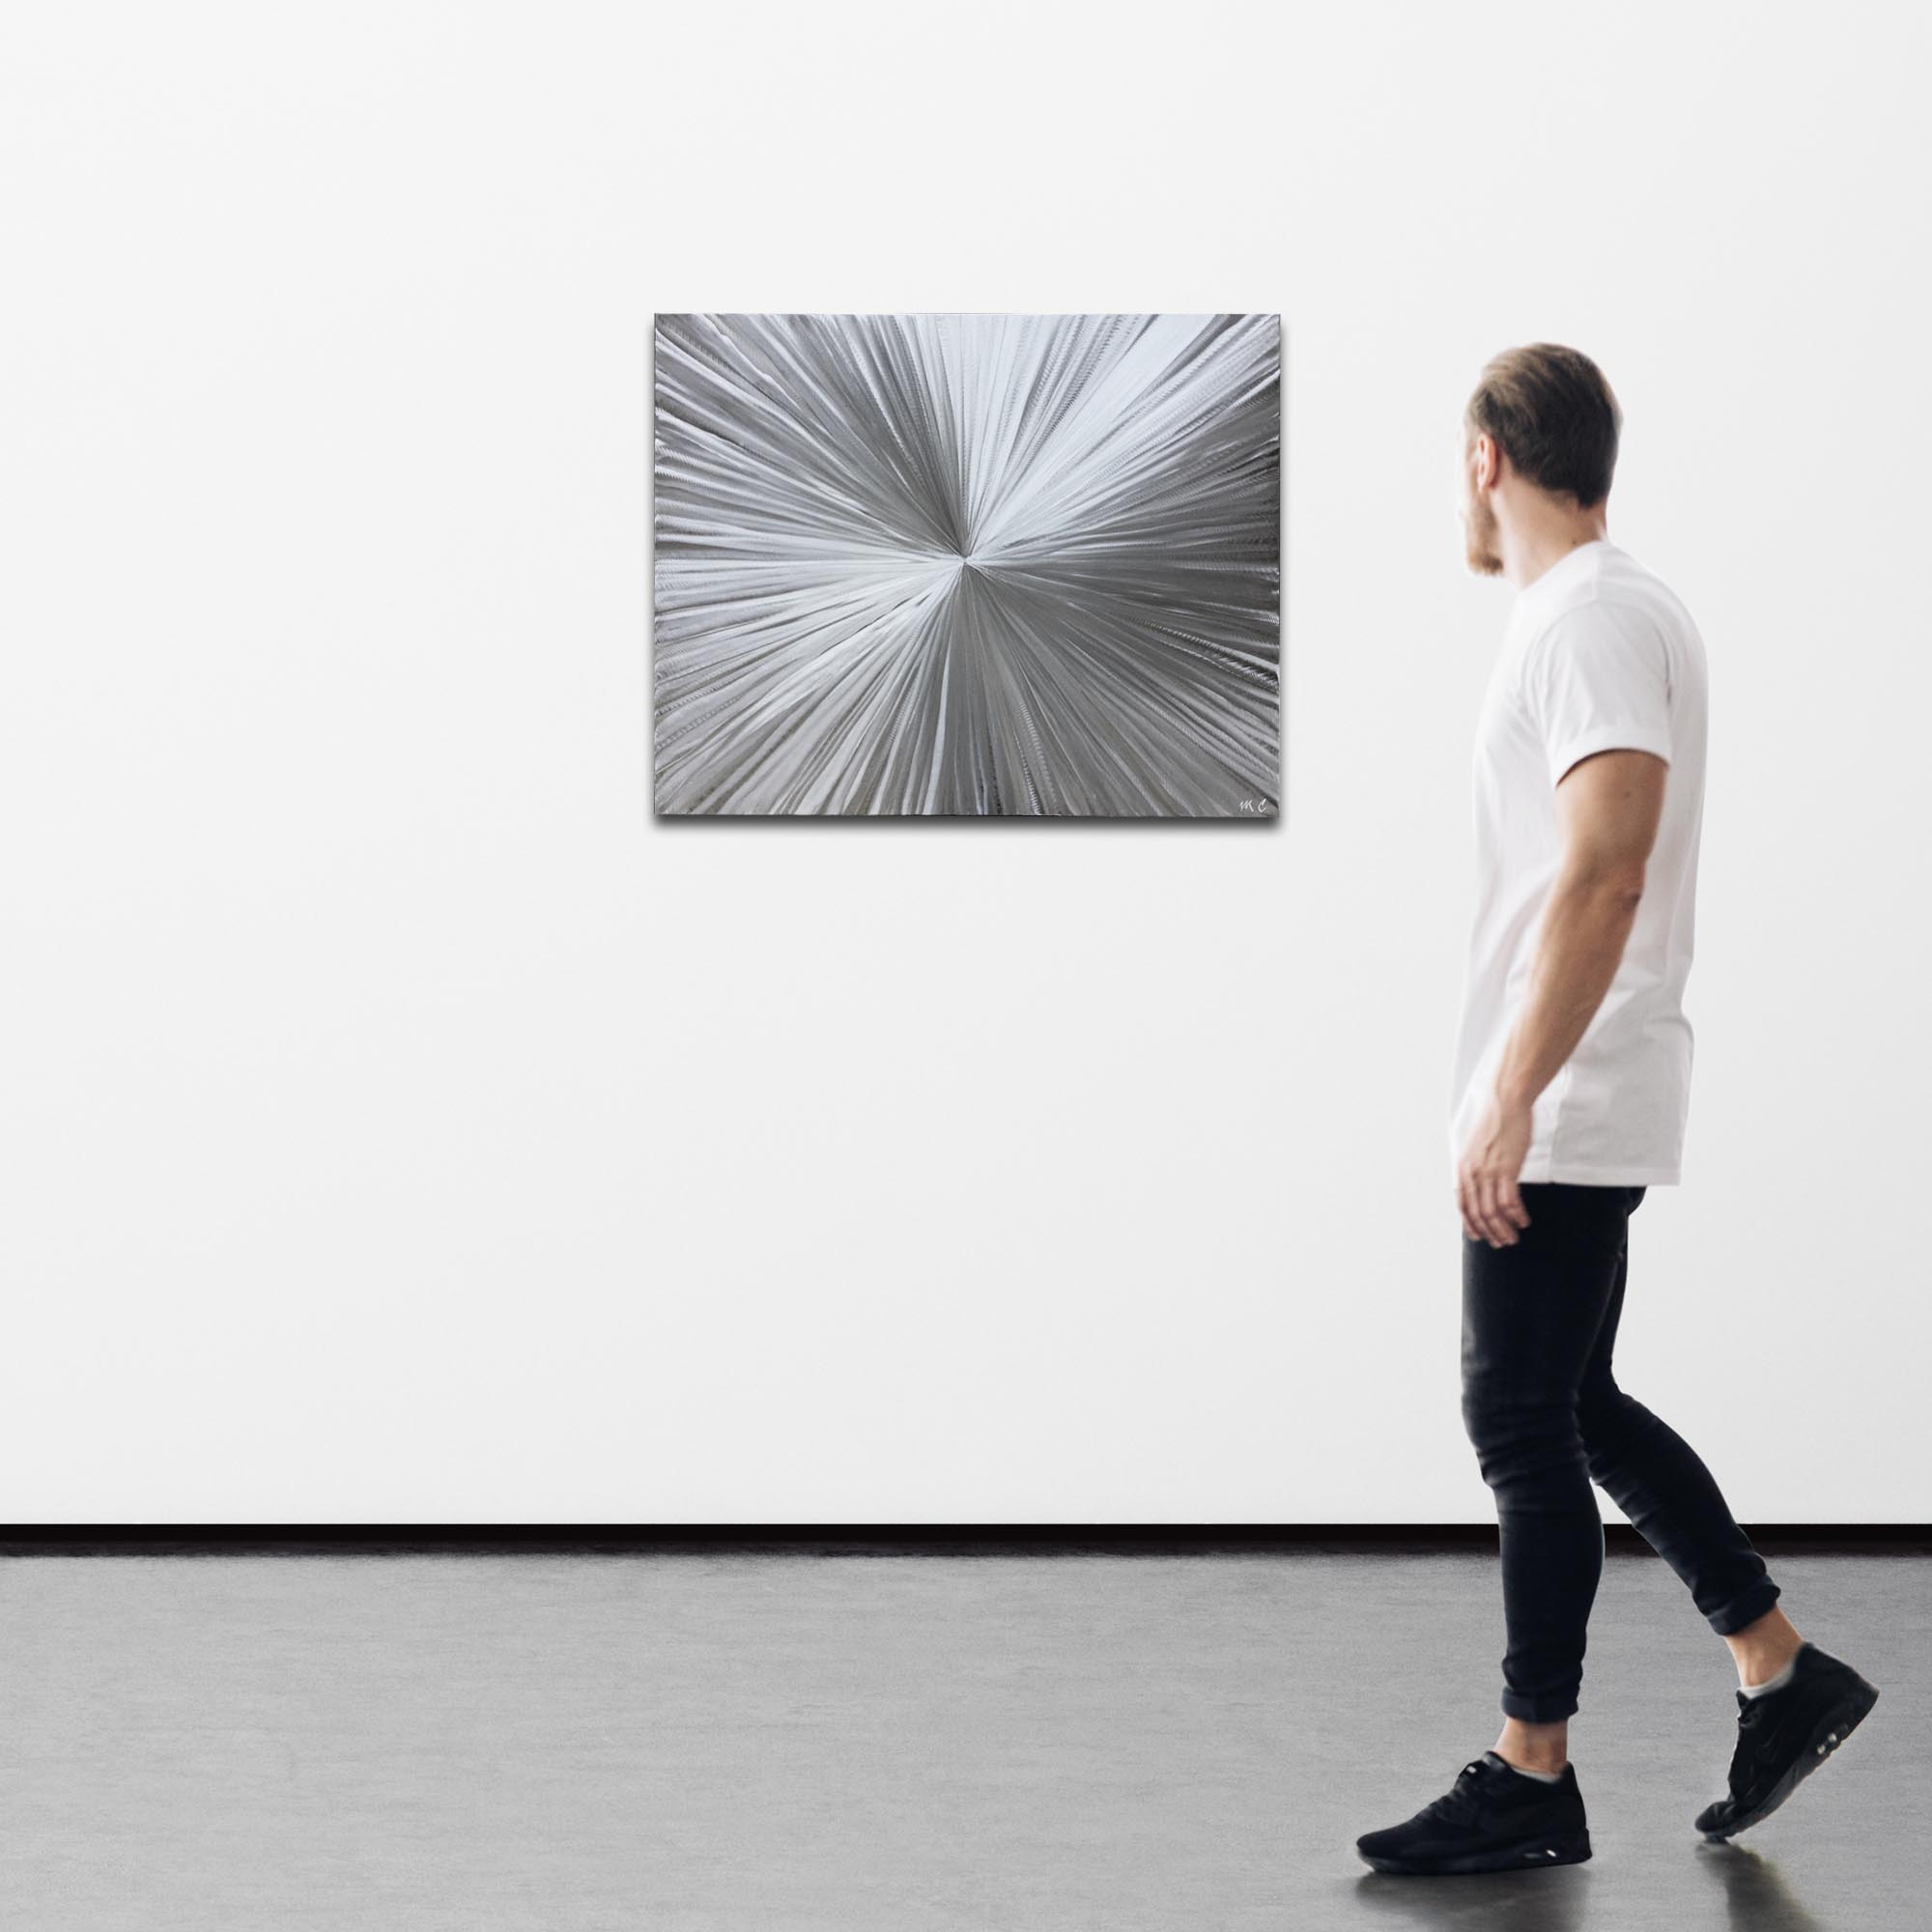 Bursting by Helena Martin - Sunburst Metal Art on Natural Aluminum - Image 3